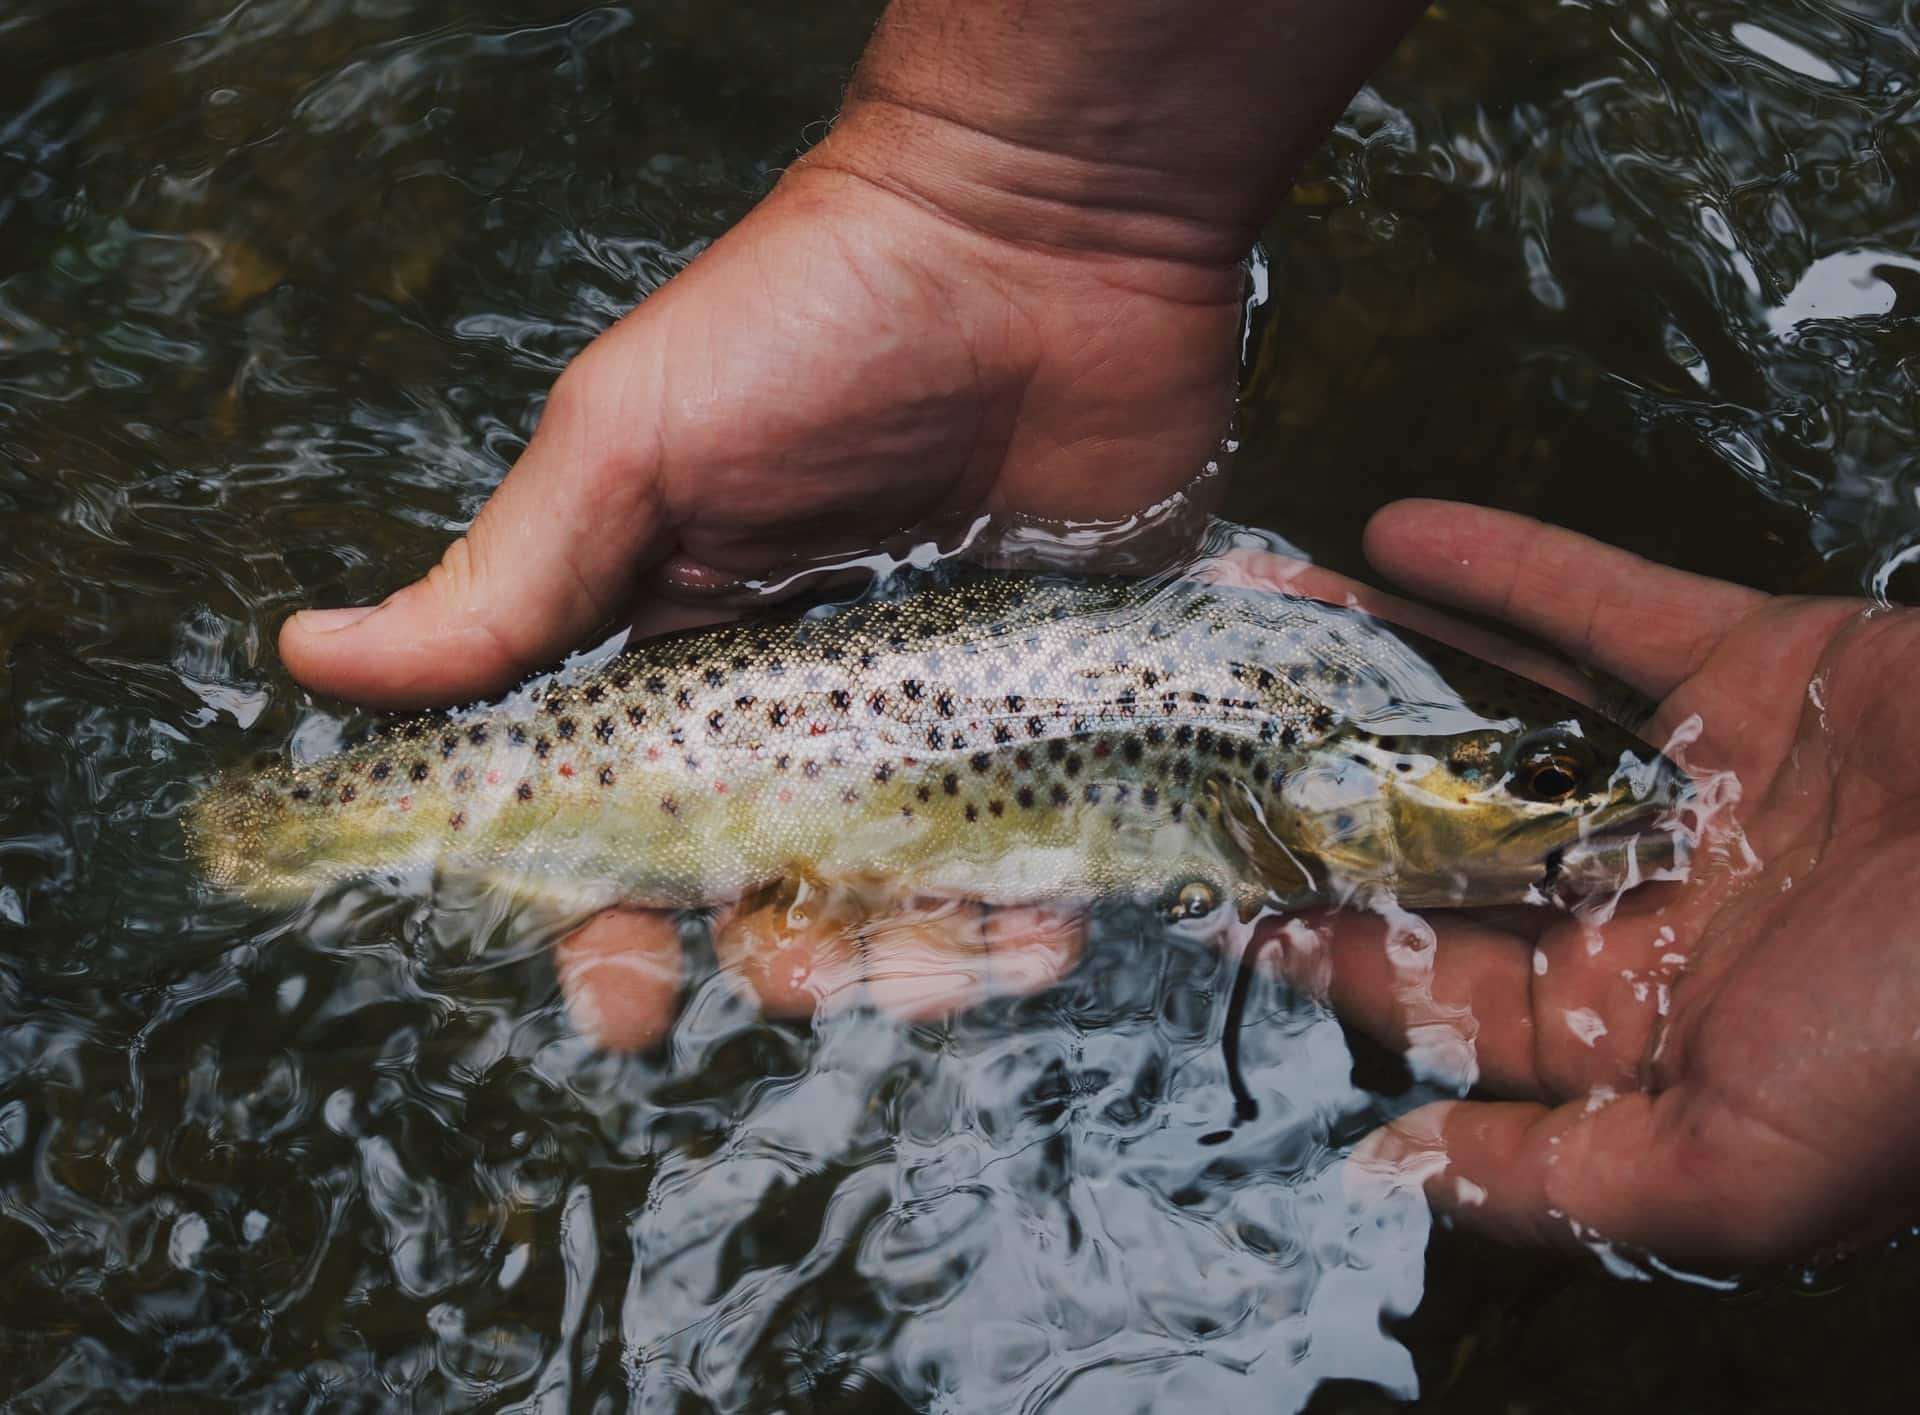 how to hold a trout, holding a trout, handling a trout, how to hold a trout fish for a picture